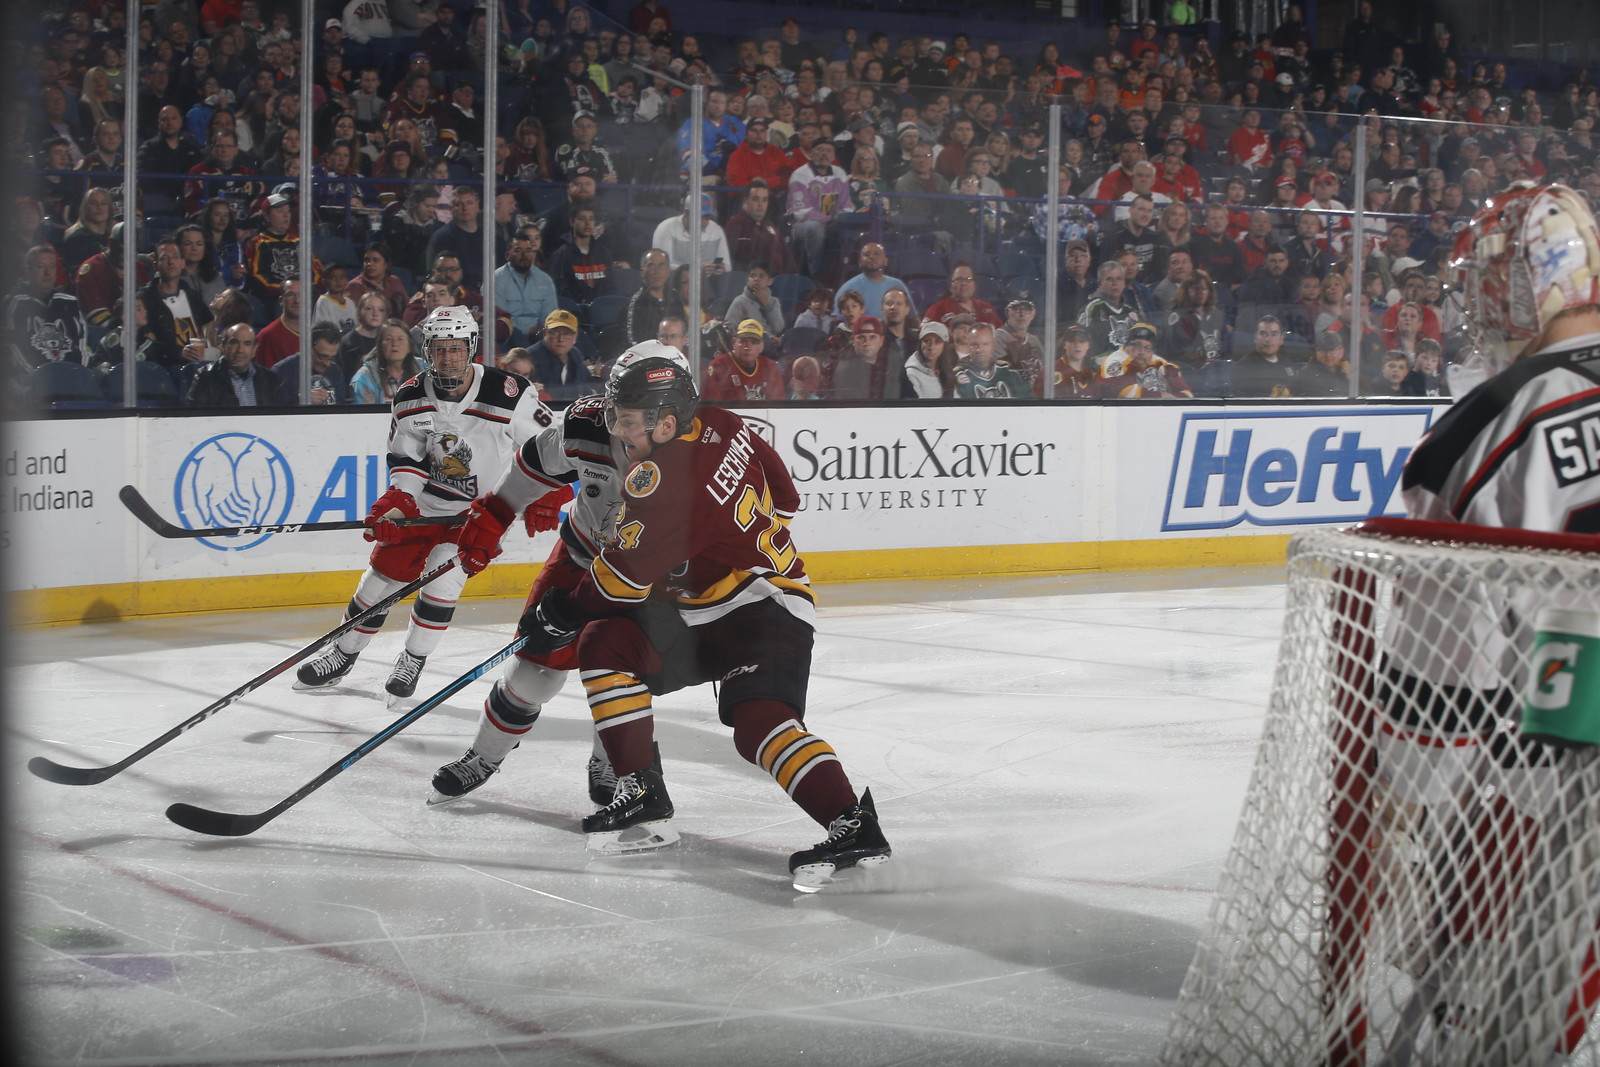 April 28, 2019 Game 5 Central Division Semifinals vs. Grand Rapids Griffins